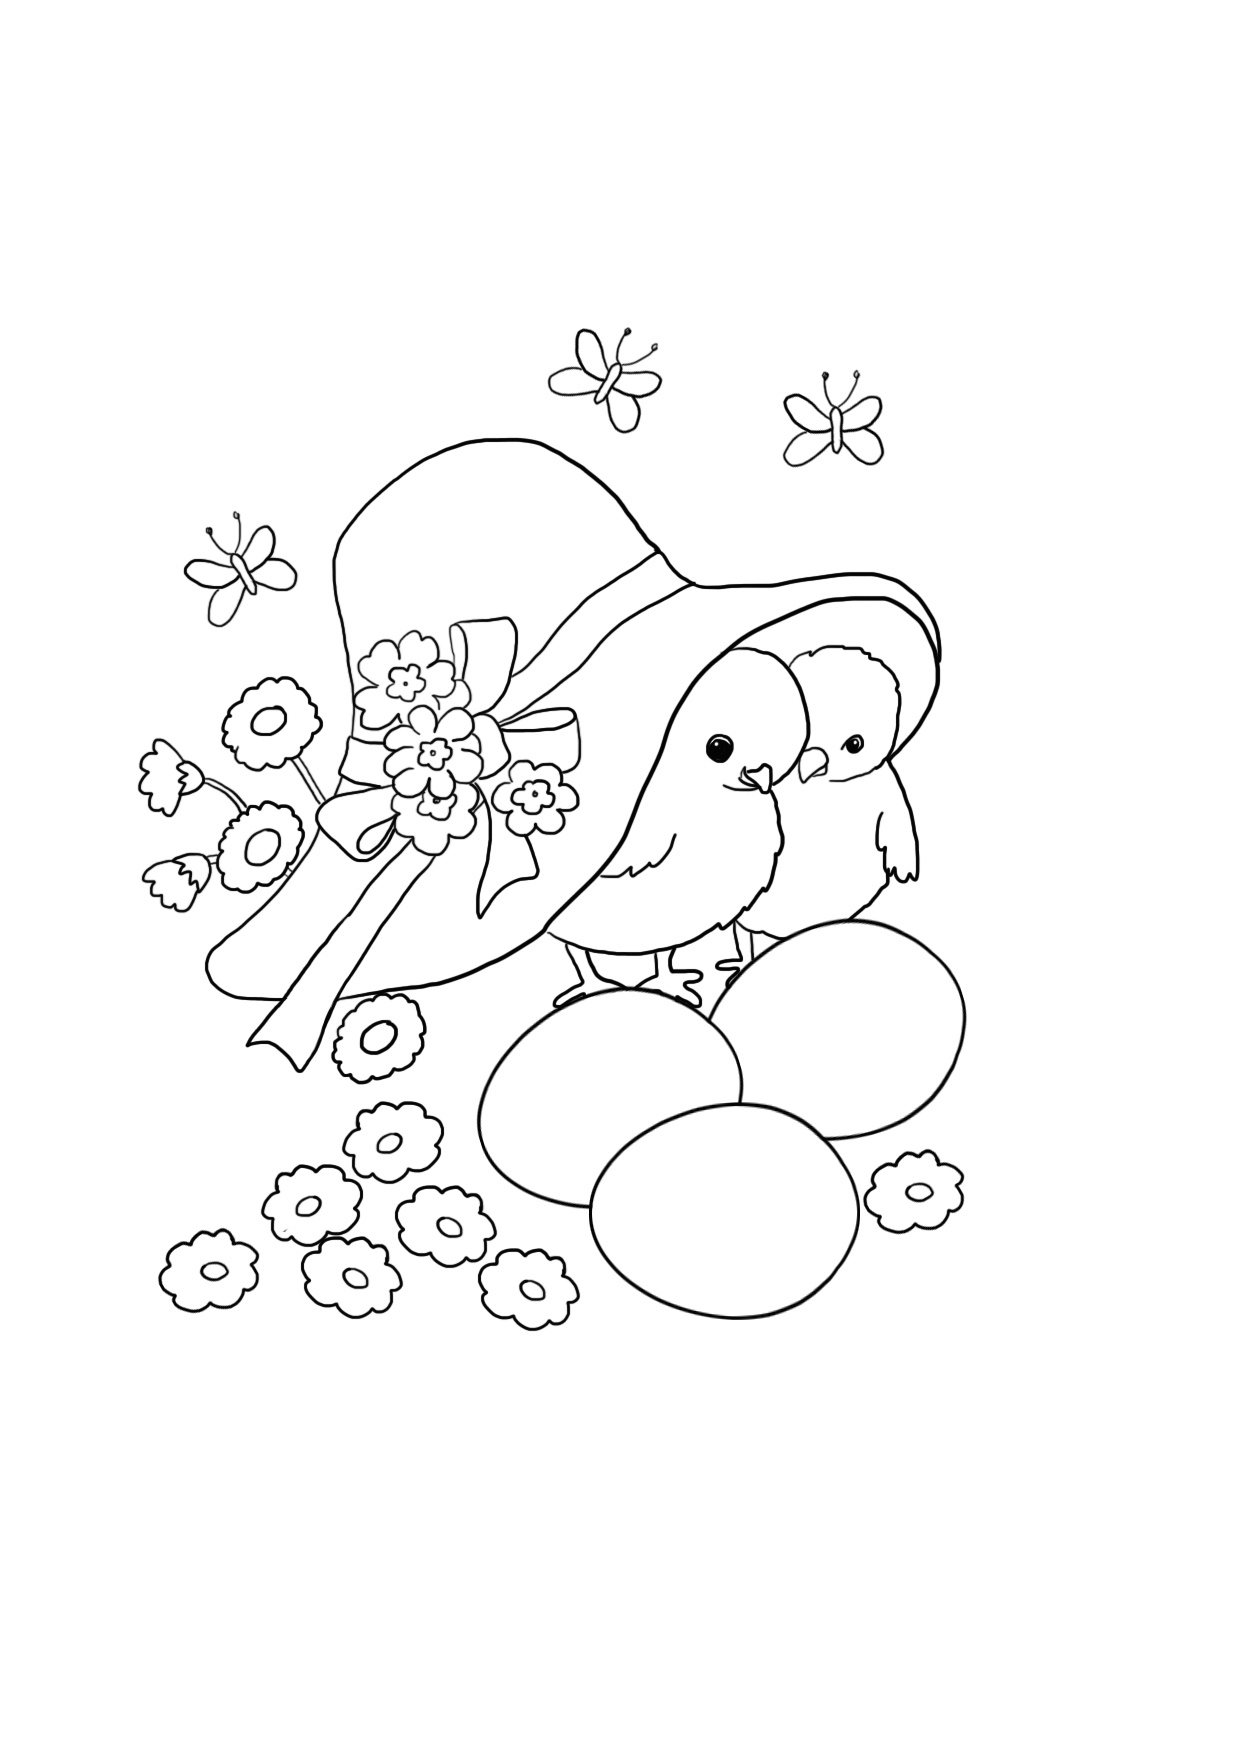 Easter coloring sheet with chickens and flowers